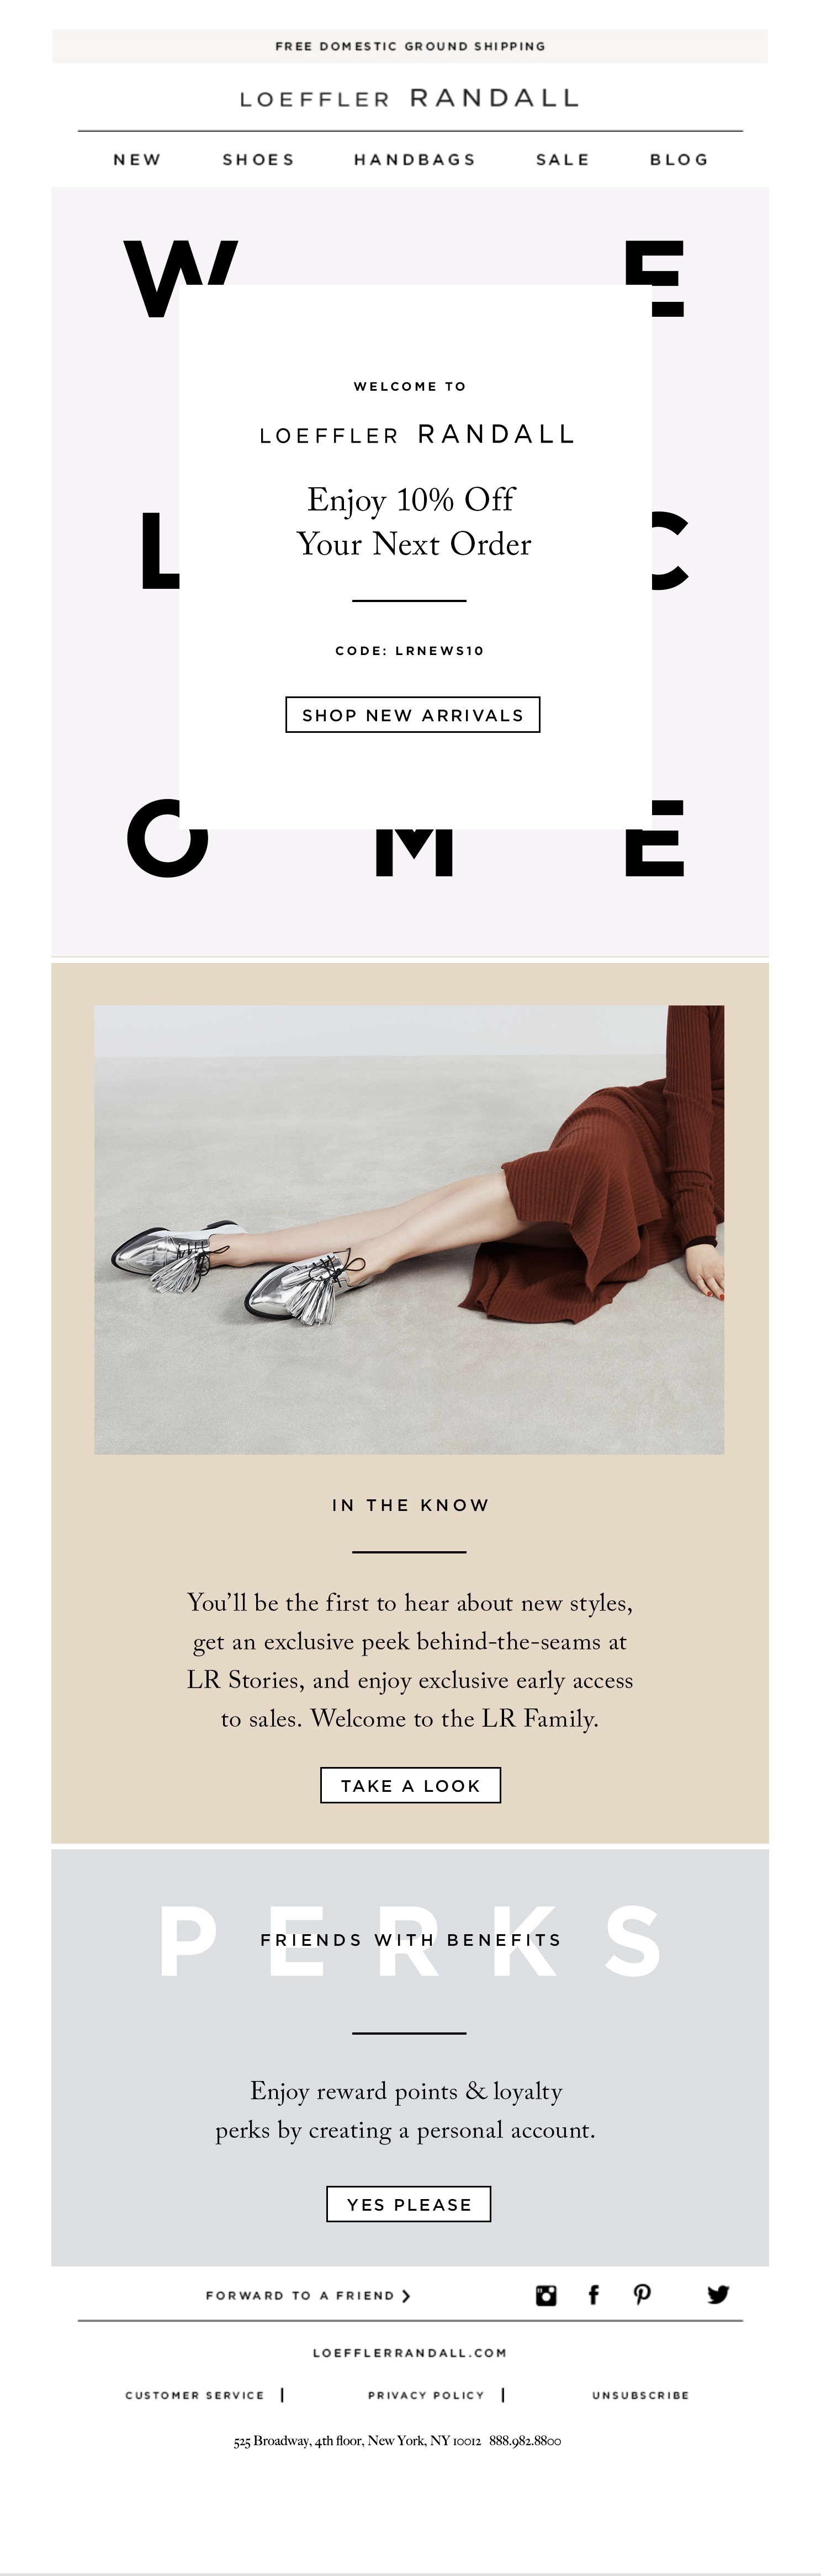 Retailer Loeffler Randall turns a promotional-based welcome email into a powerful tool that can be used to increase revenue.